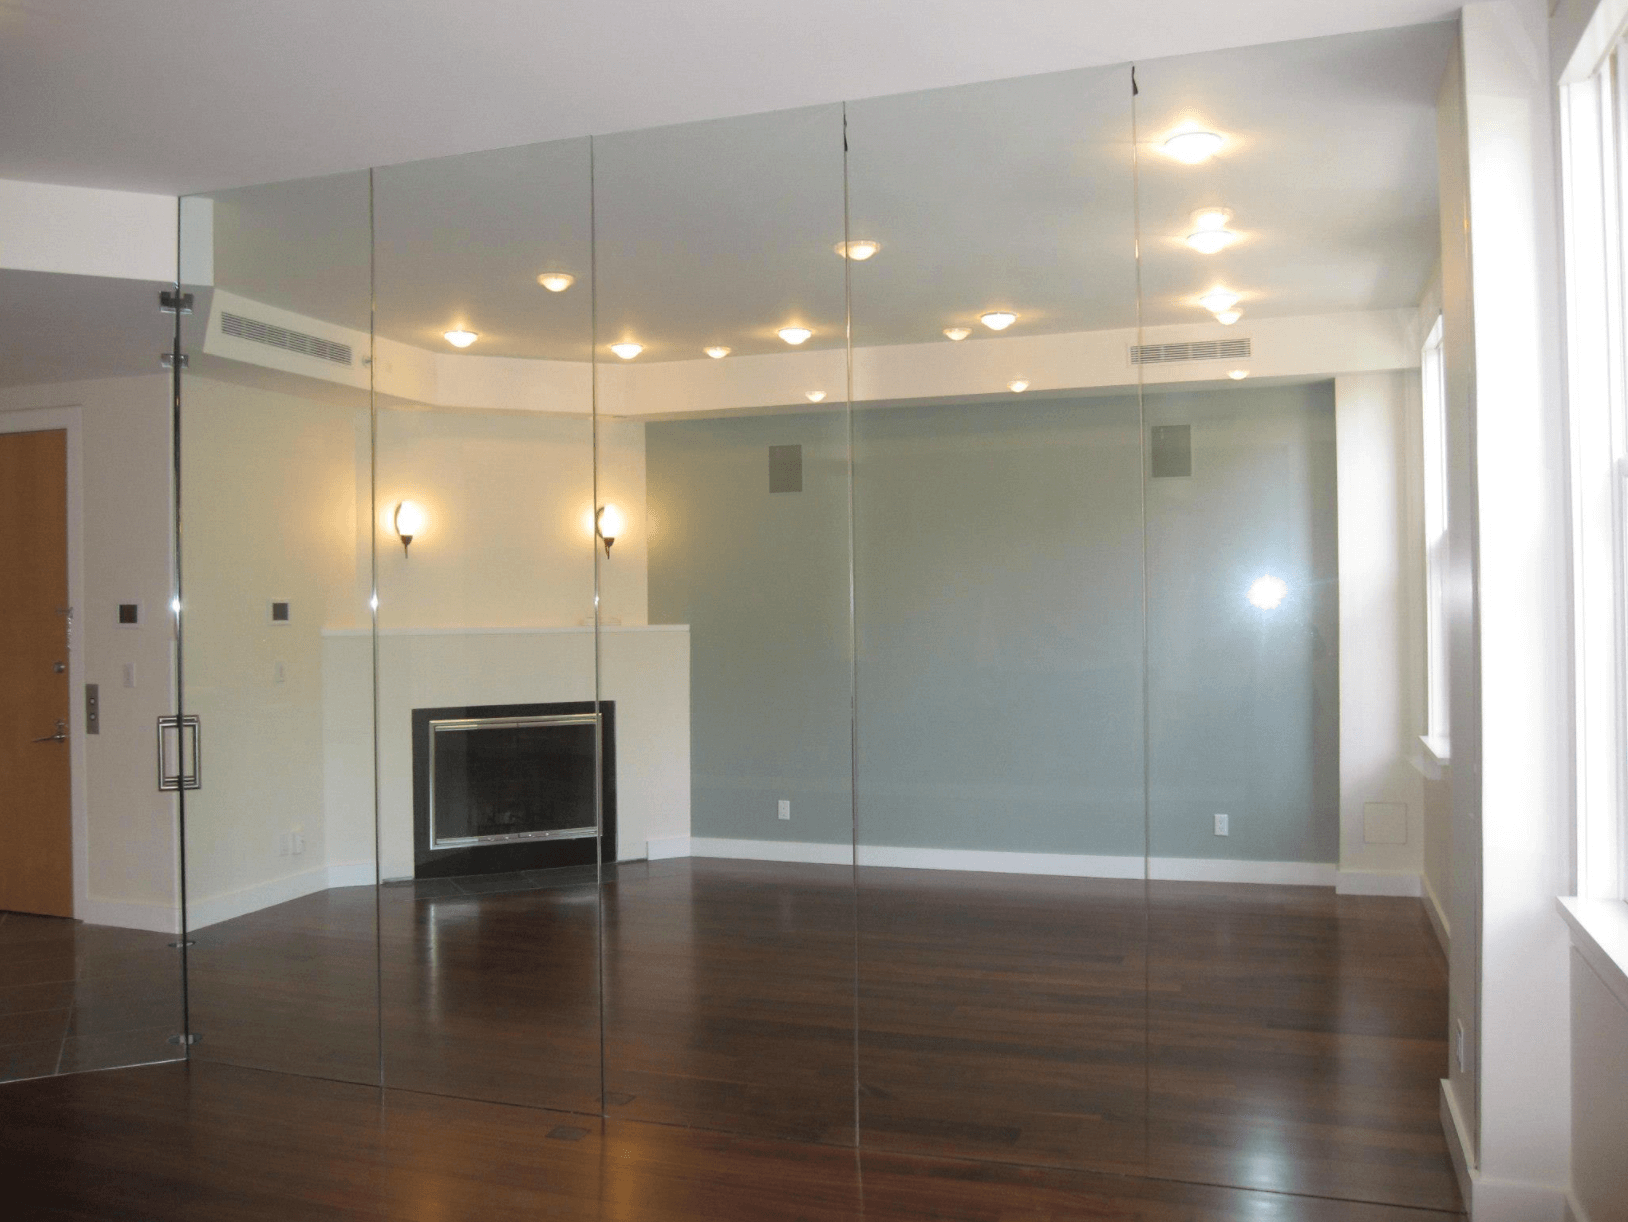 Floor-To-Ceiling Mirrors